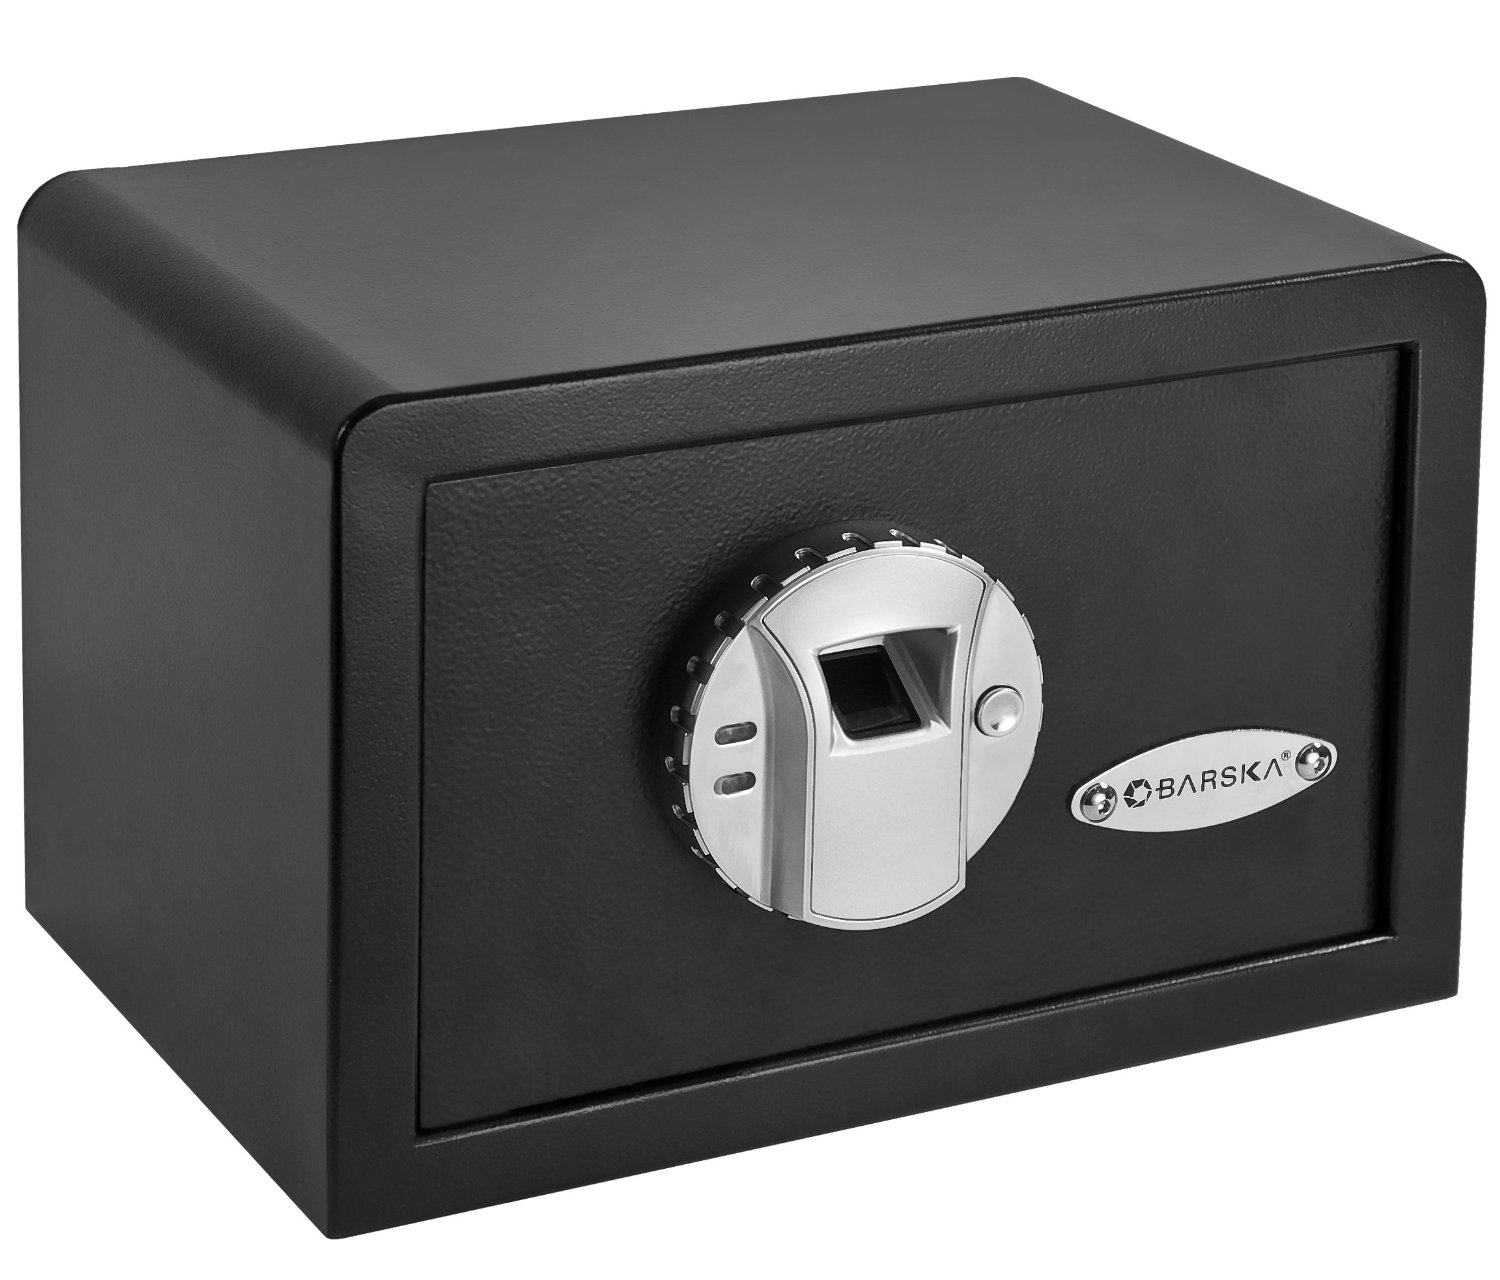 Fingerprint Access Gun Safe - Can be Mounted into Wall, BMBS17299 :  No combinations to remember or carry a key because your fingerprint is the key that opens the safe door of this Fingerprint Access Gun Safe - Can be Mounted into Wall! Up to 30 users, Store anything you want to keep hidden, Pre-drilled holes allow the safe to be mounted into a wall, onto a shelf or counter top, Emergency back-up keys included, Operates on 4 AA batteries, Dimensions: 12 x 8 x 7.75 Inner Dimensions: 11.5 x 7.5 x 5.75, Weight: 12 lbs, One-Year Limited Warranty. Can hold up to 30 fingerprints of registered users.